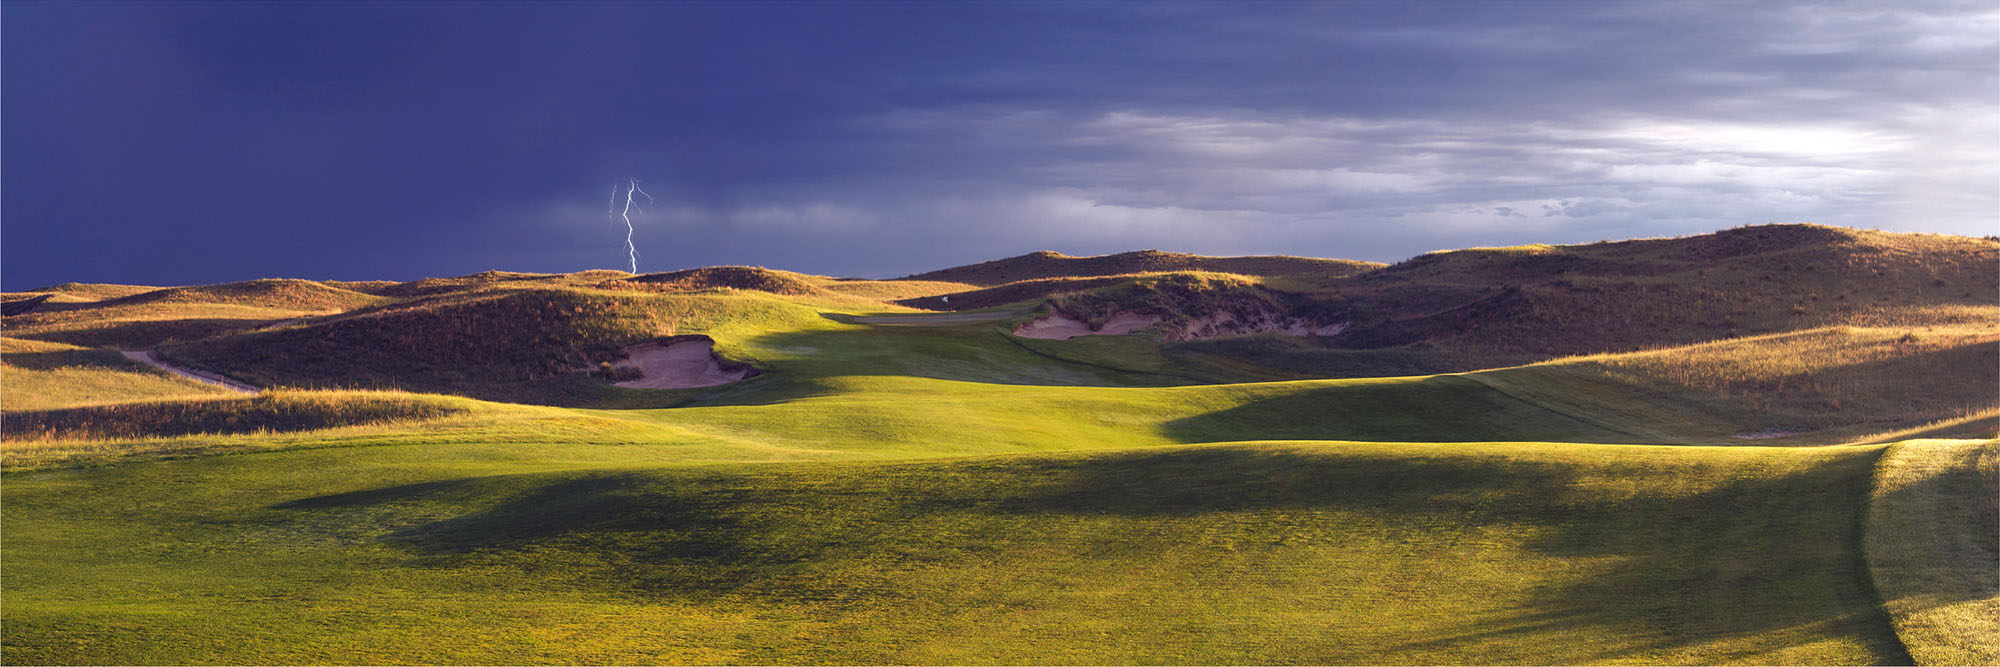 Golf Course Image - Sand Hills No. 1